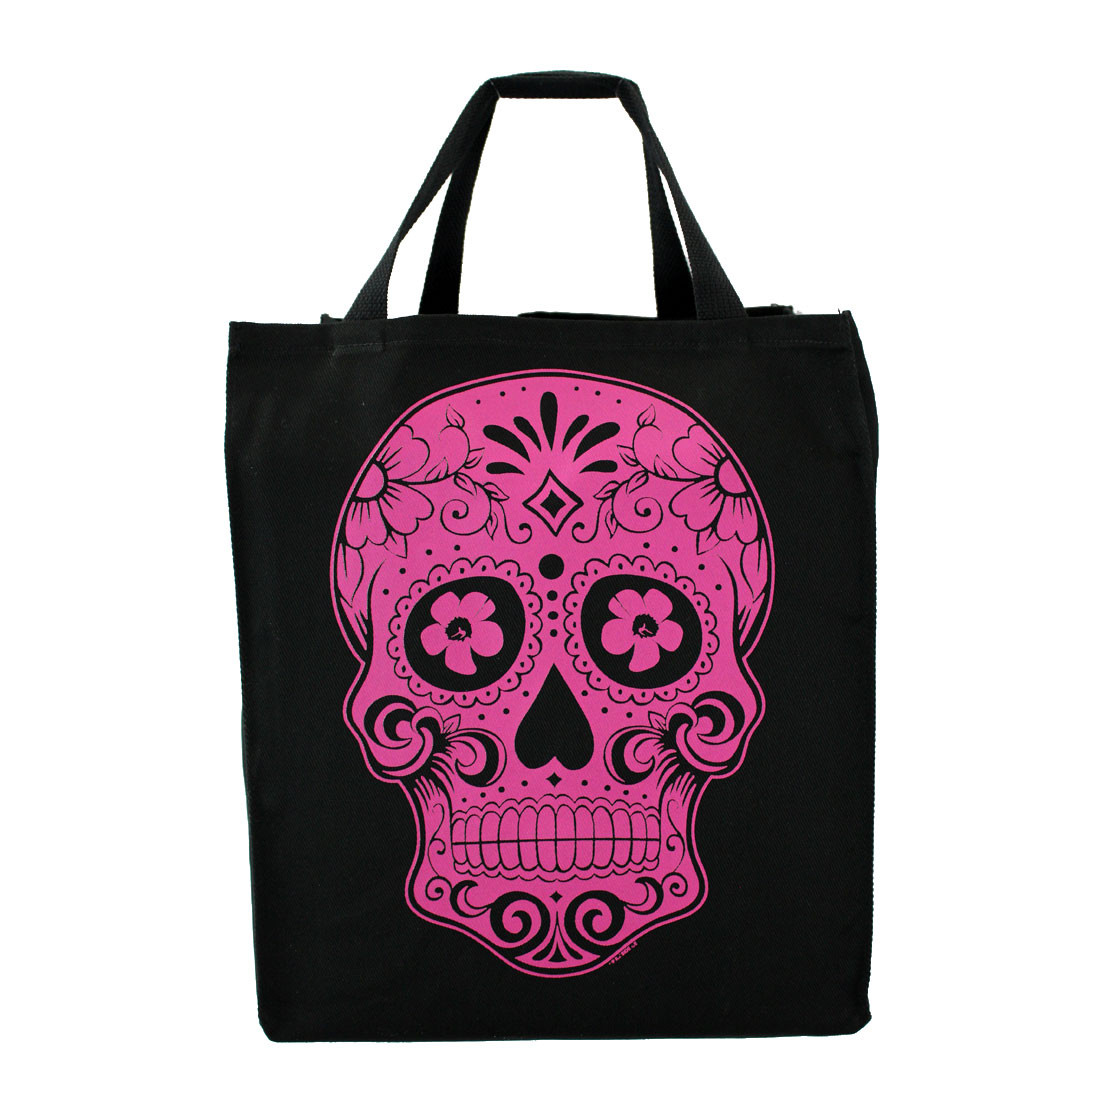 Pink Day of the Dead skull cotton twill grocery tote bag.